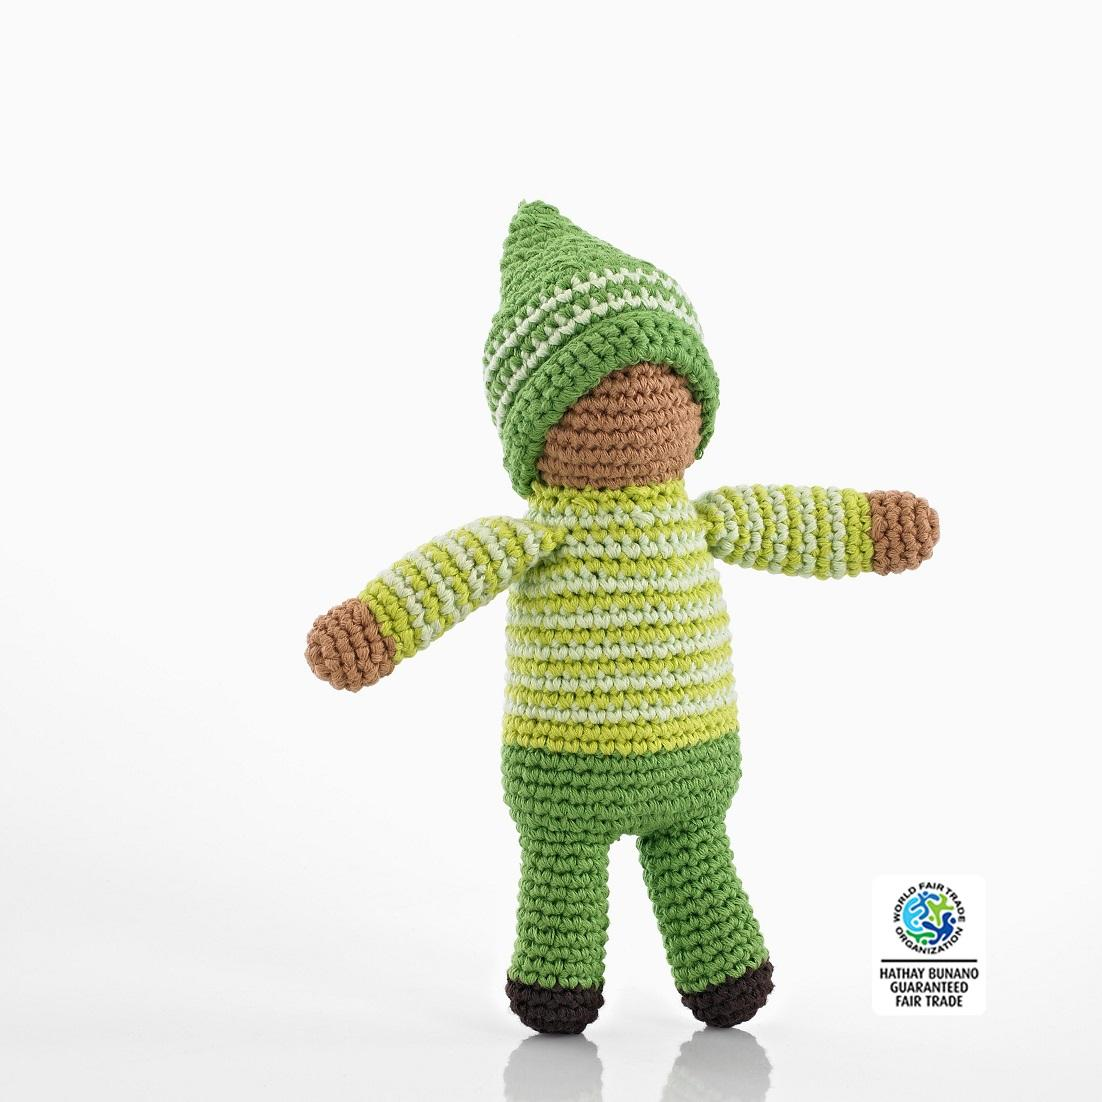 fair trade crochet cotton Pixie soft doll in green